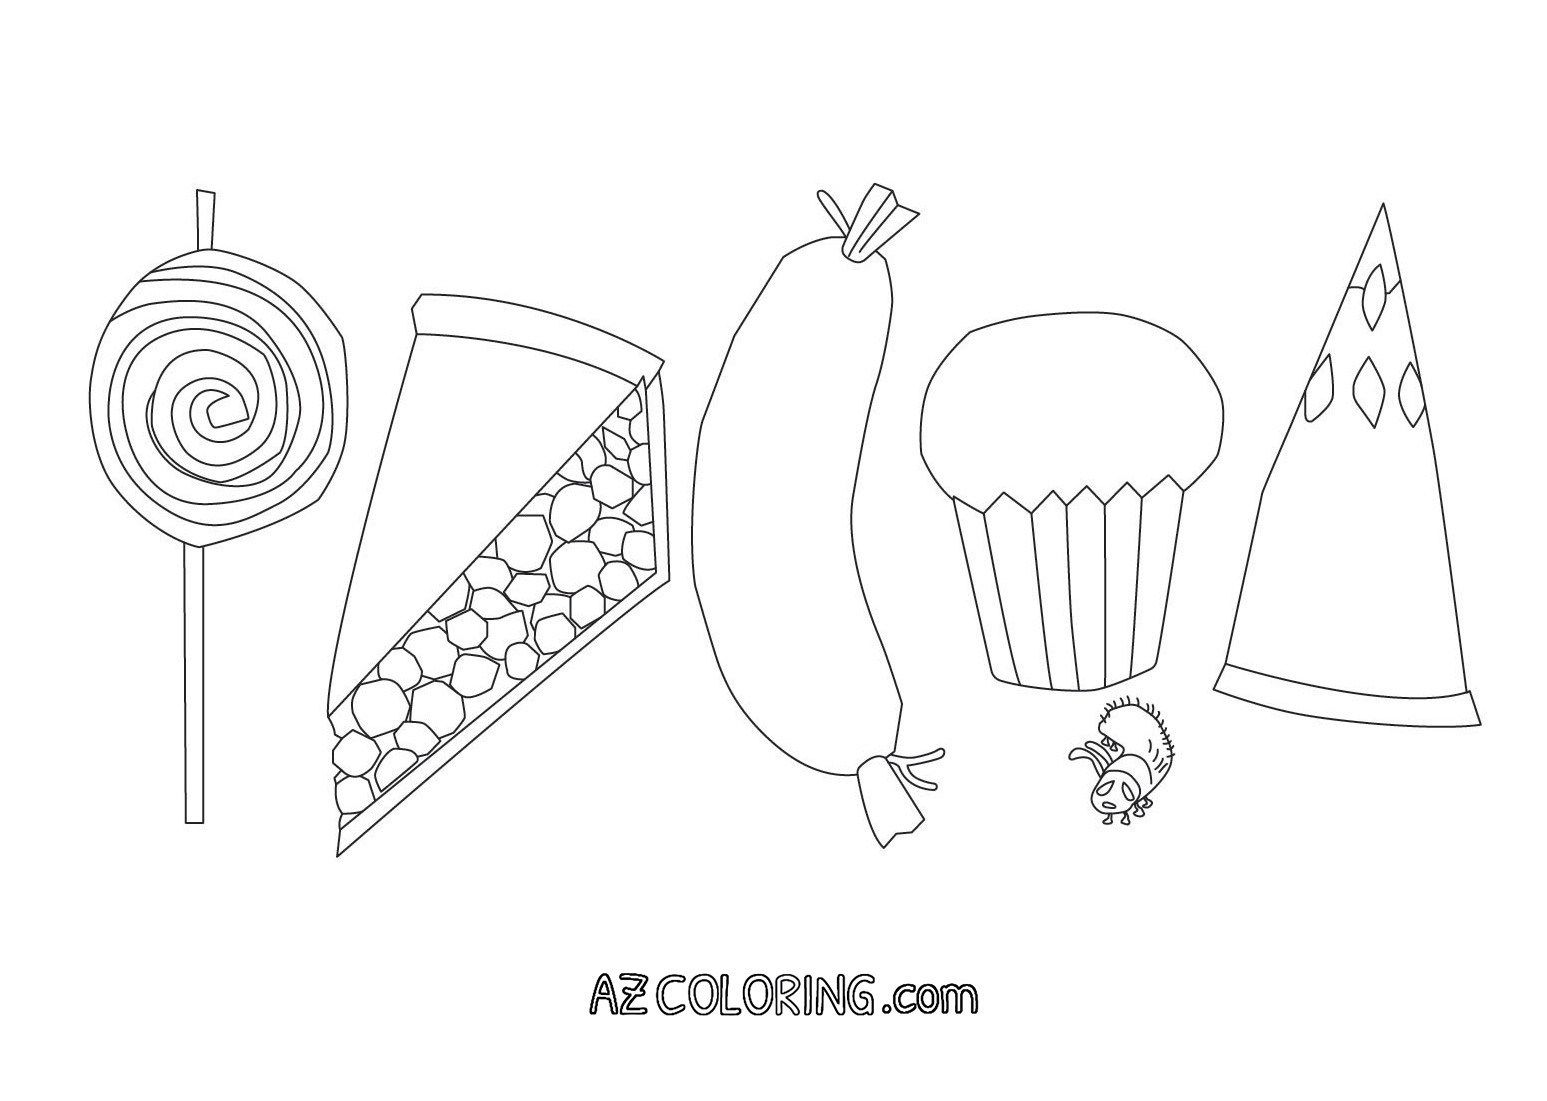 Hungry Caterpillar Coloring Pages Coloring Pages Very Hungry Caterpillar Page Az Printables To Print Entitlementtrap Com Hungry Caterpillar Mermaid Coloring Pages Unique Coloring Pages